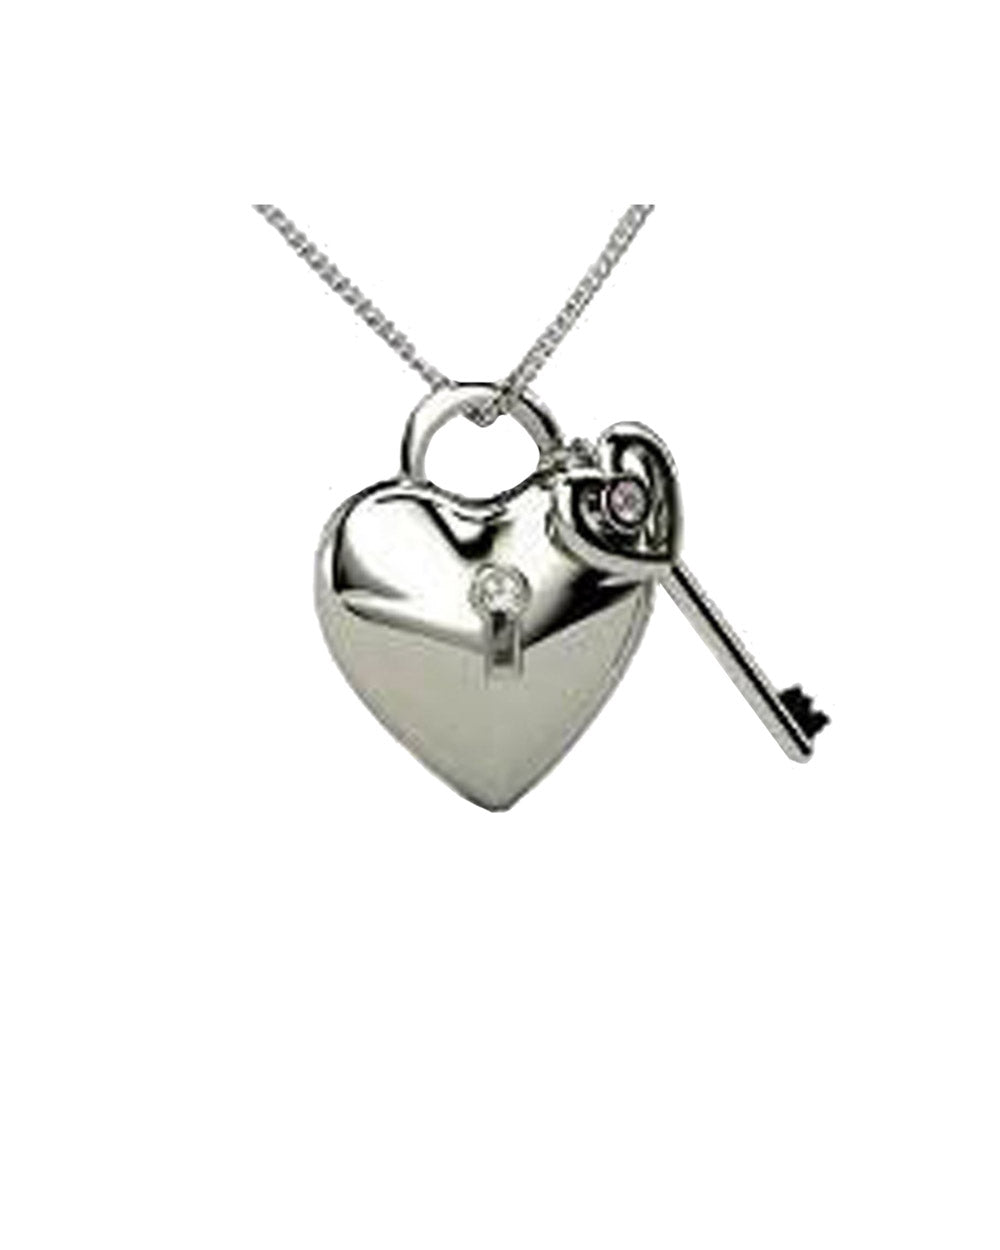 Heart with Key Charm in Sterling Silver